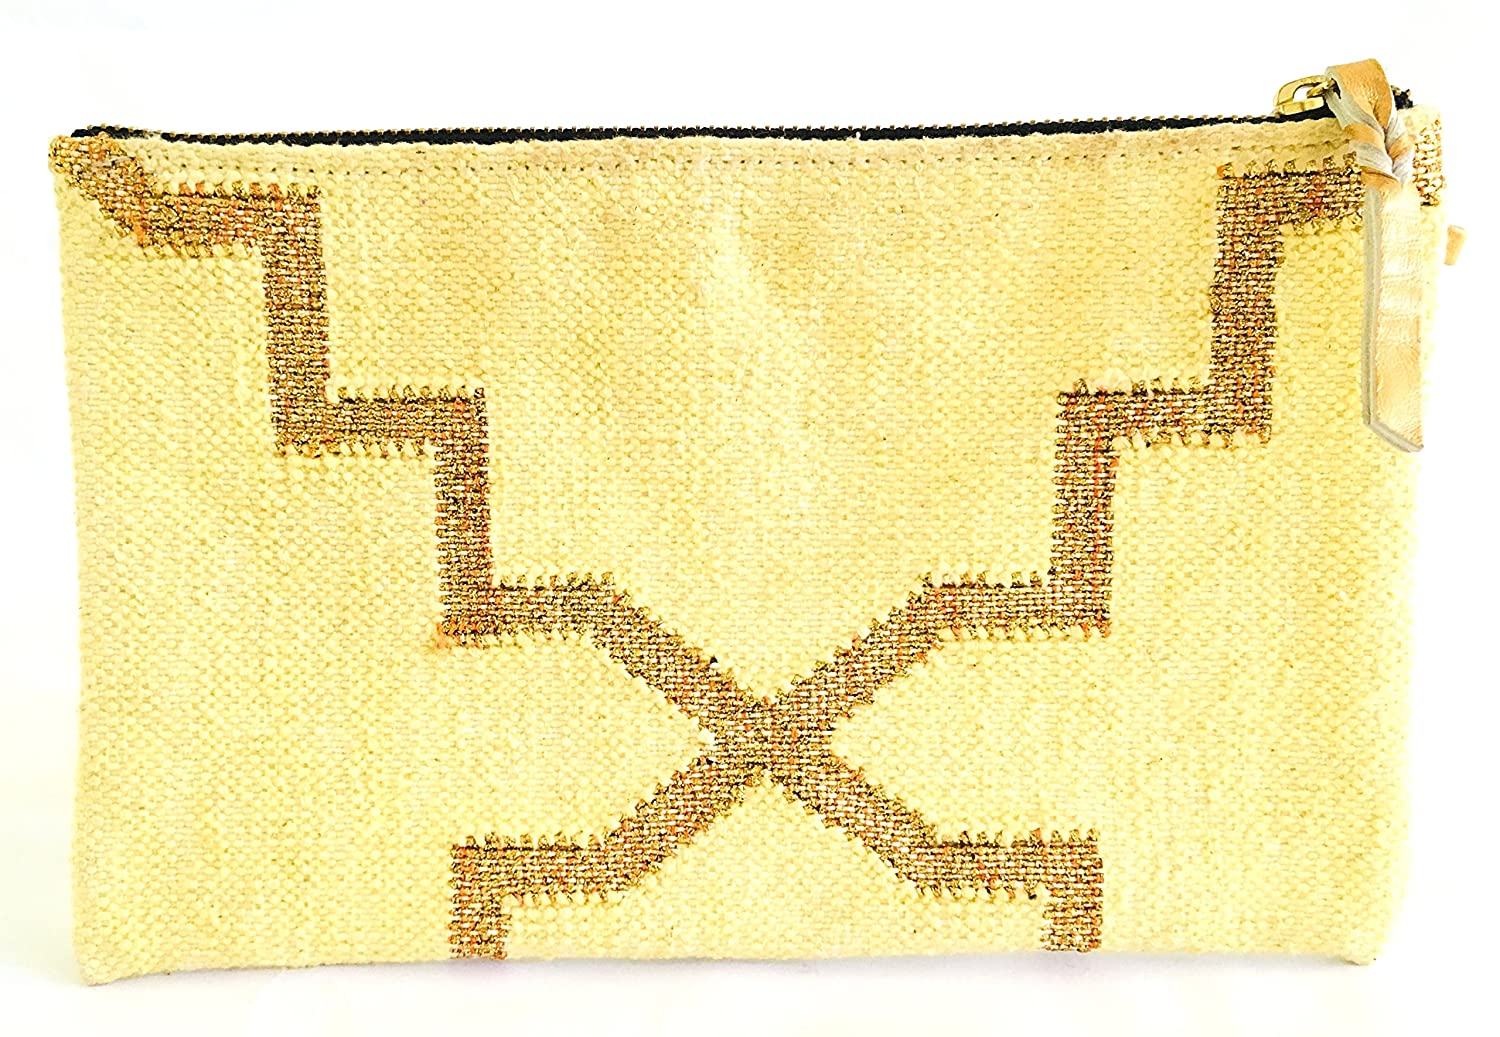 DS Luxury Living Handwoven Cotton Dhurries Handmade Purse Handbag Pouch Wallet Phone Purse for Men and Women